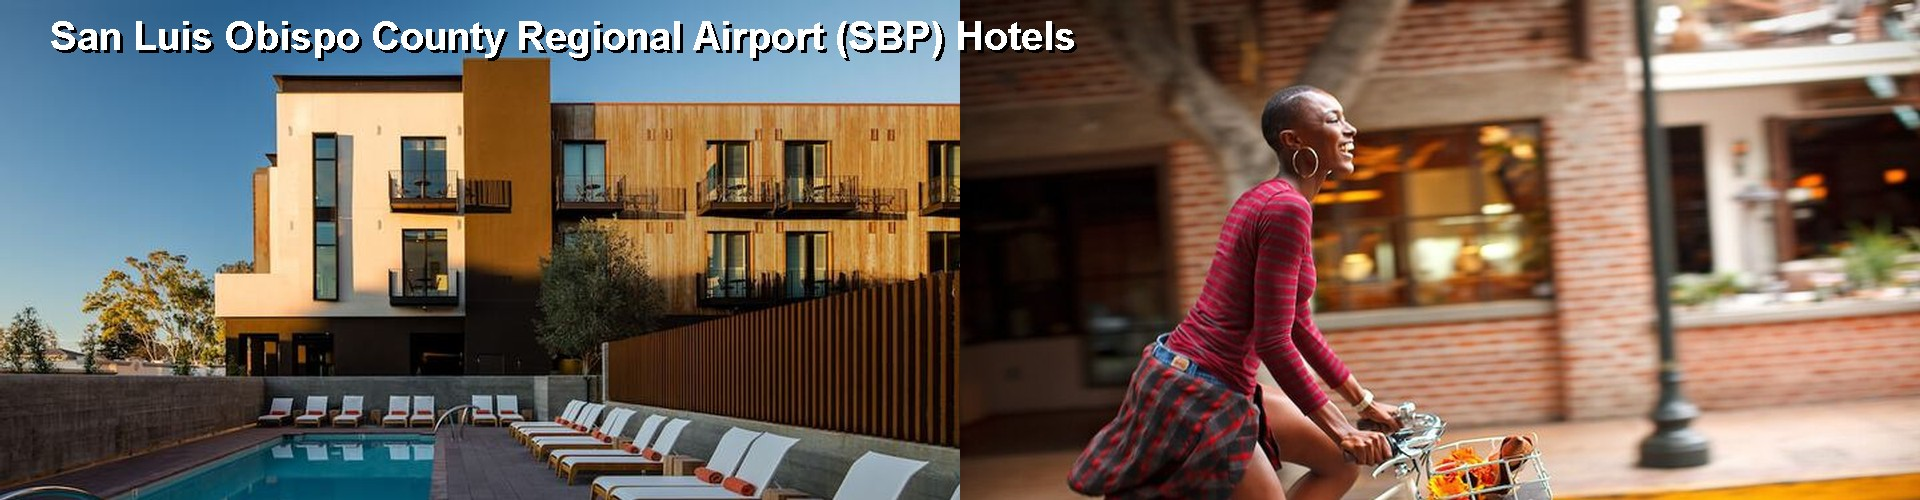 5 Best Hotels near San Luis Obispo County Regional Airport (SBP)